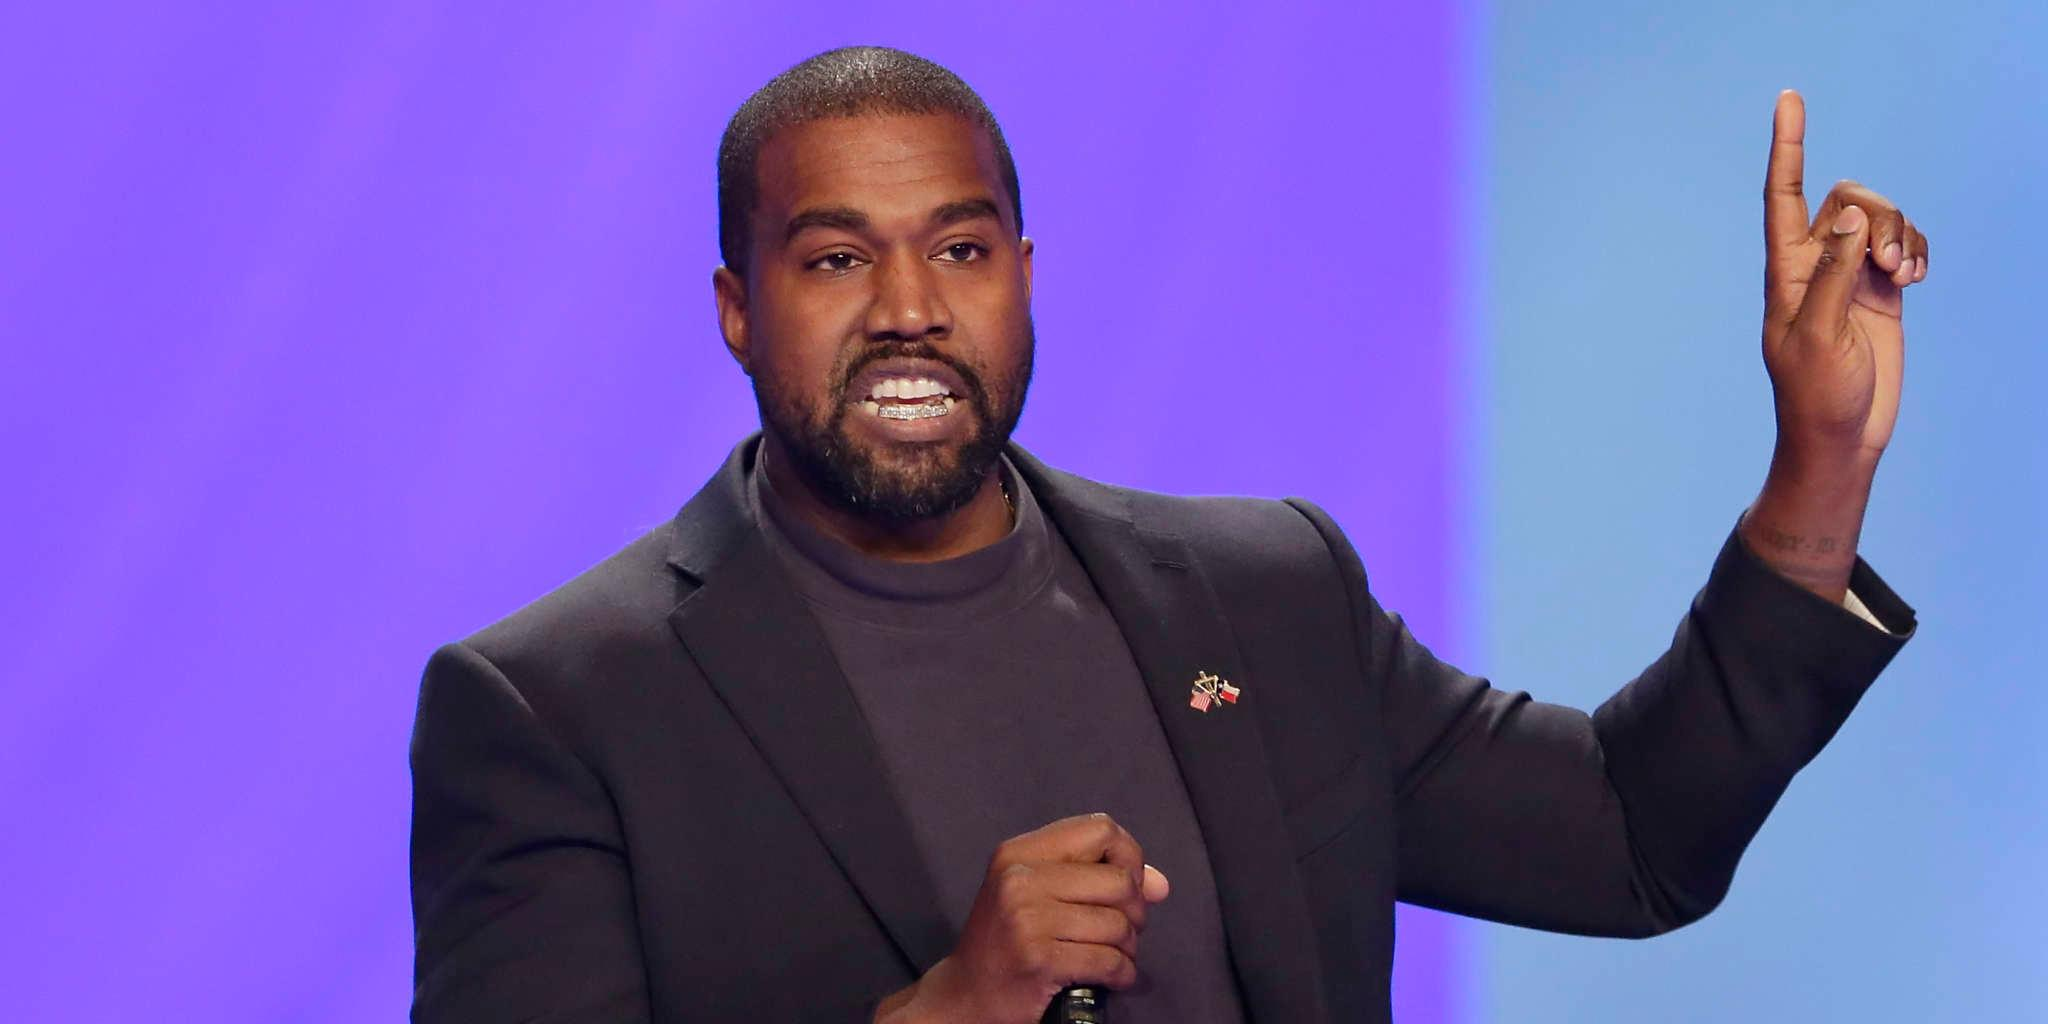 Kanye West Says 'I'm Not Crazy' While Discussing Stigma Surrounding Mental Disorders